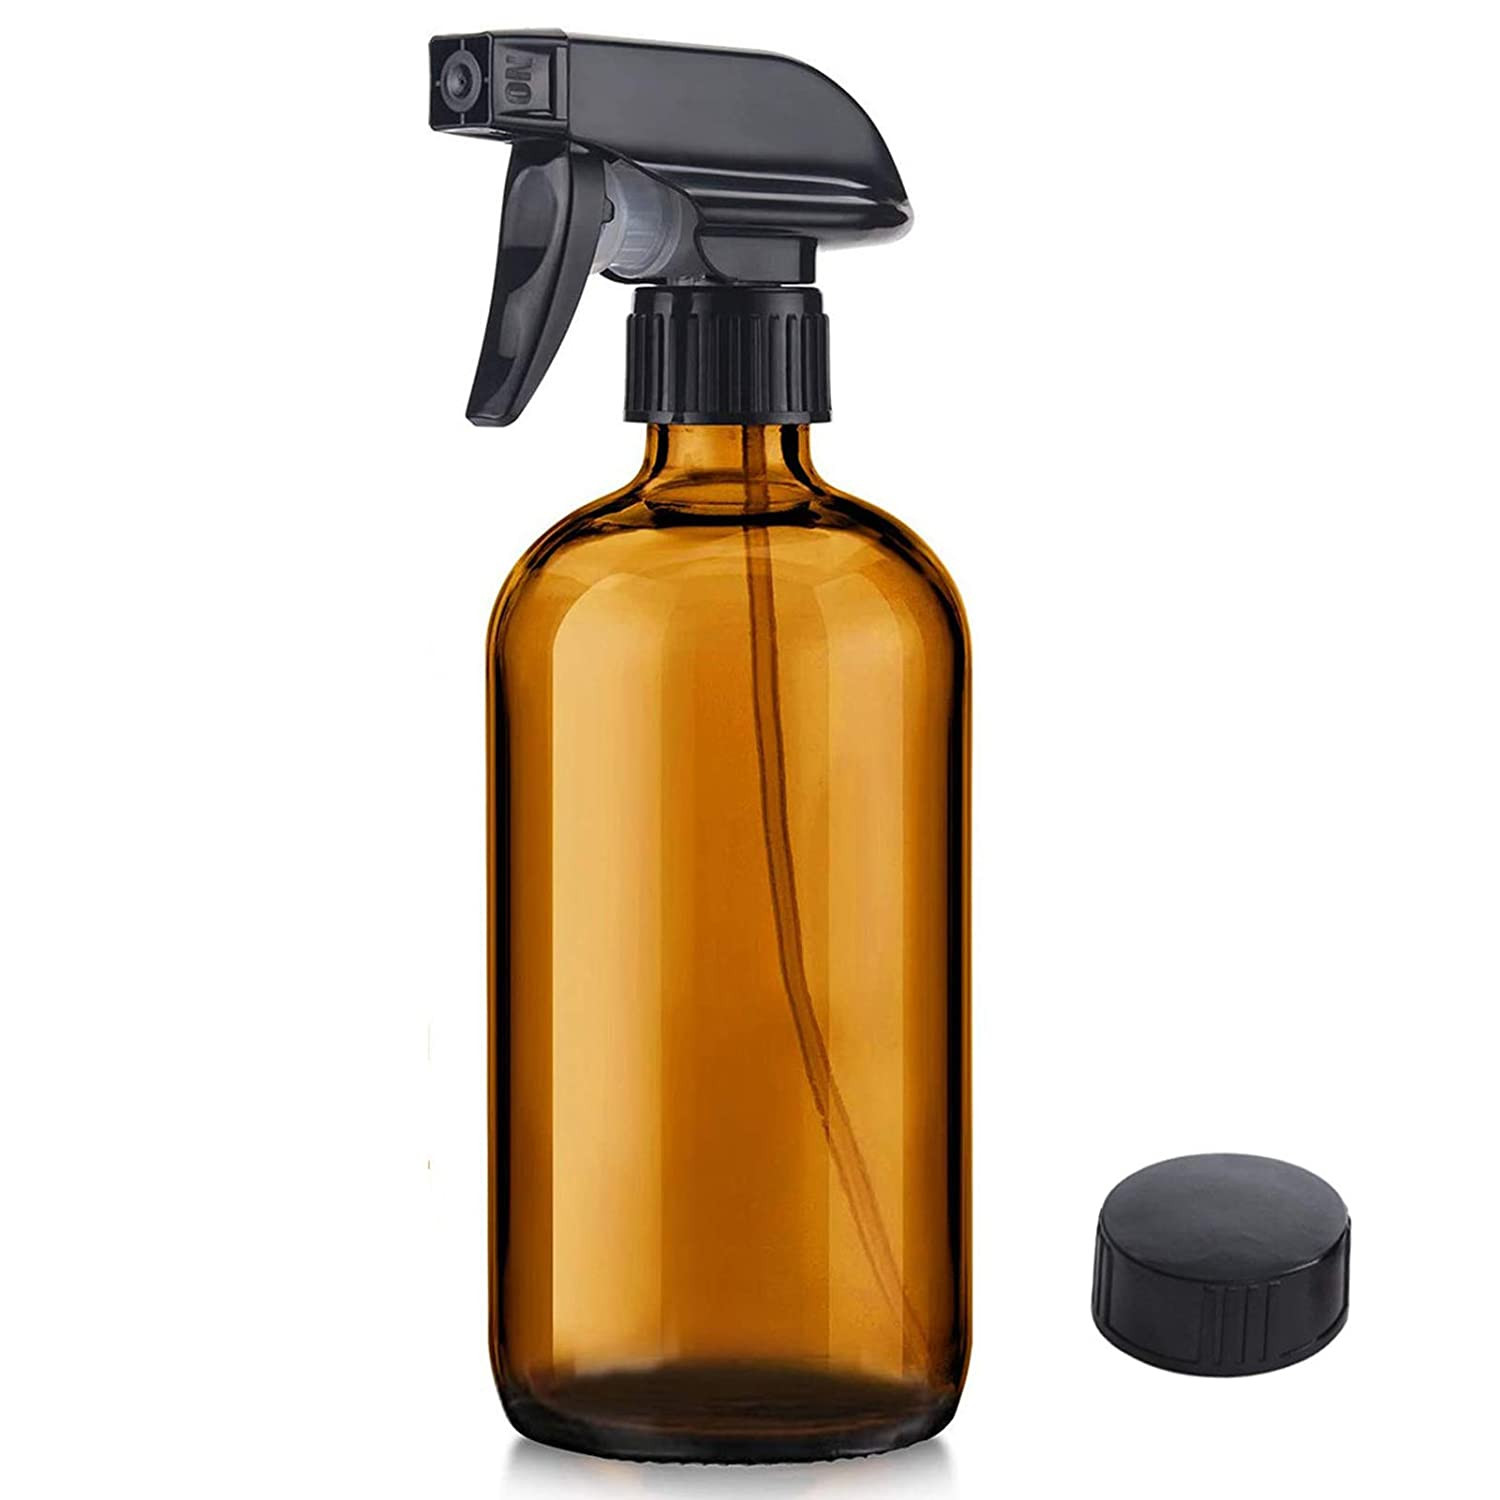 Glass Spray Bottle, Niuta 16 OZ Amber Glass Empty Spray Bottles with Labels for Plants, Pets, Essential Oils, Cleaning Products - Black Trigger Sprayer w/Mist and Stream Settings